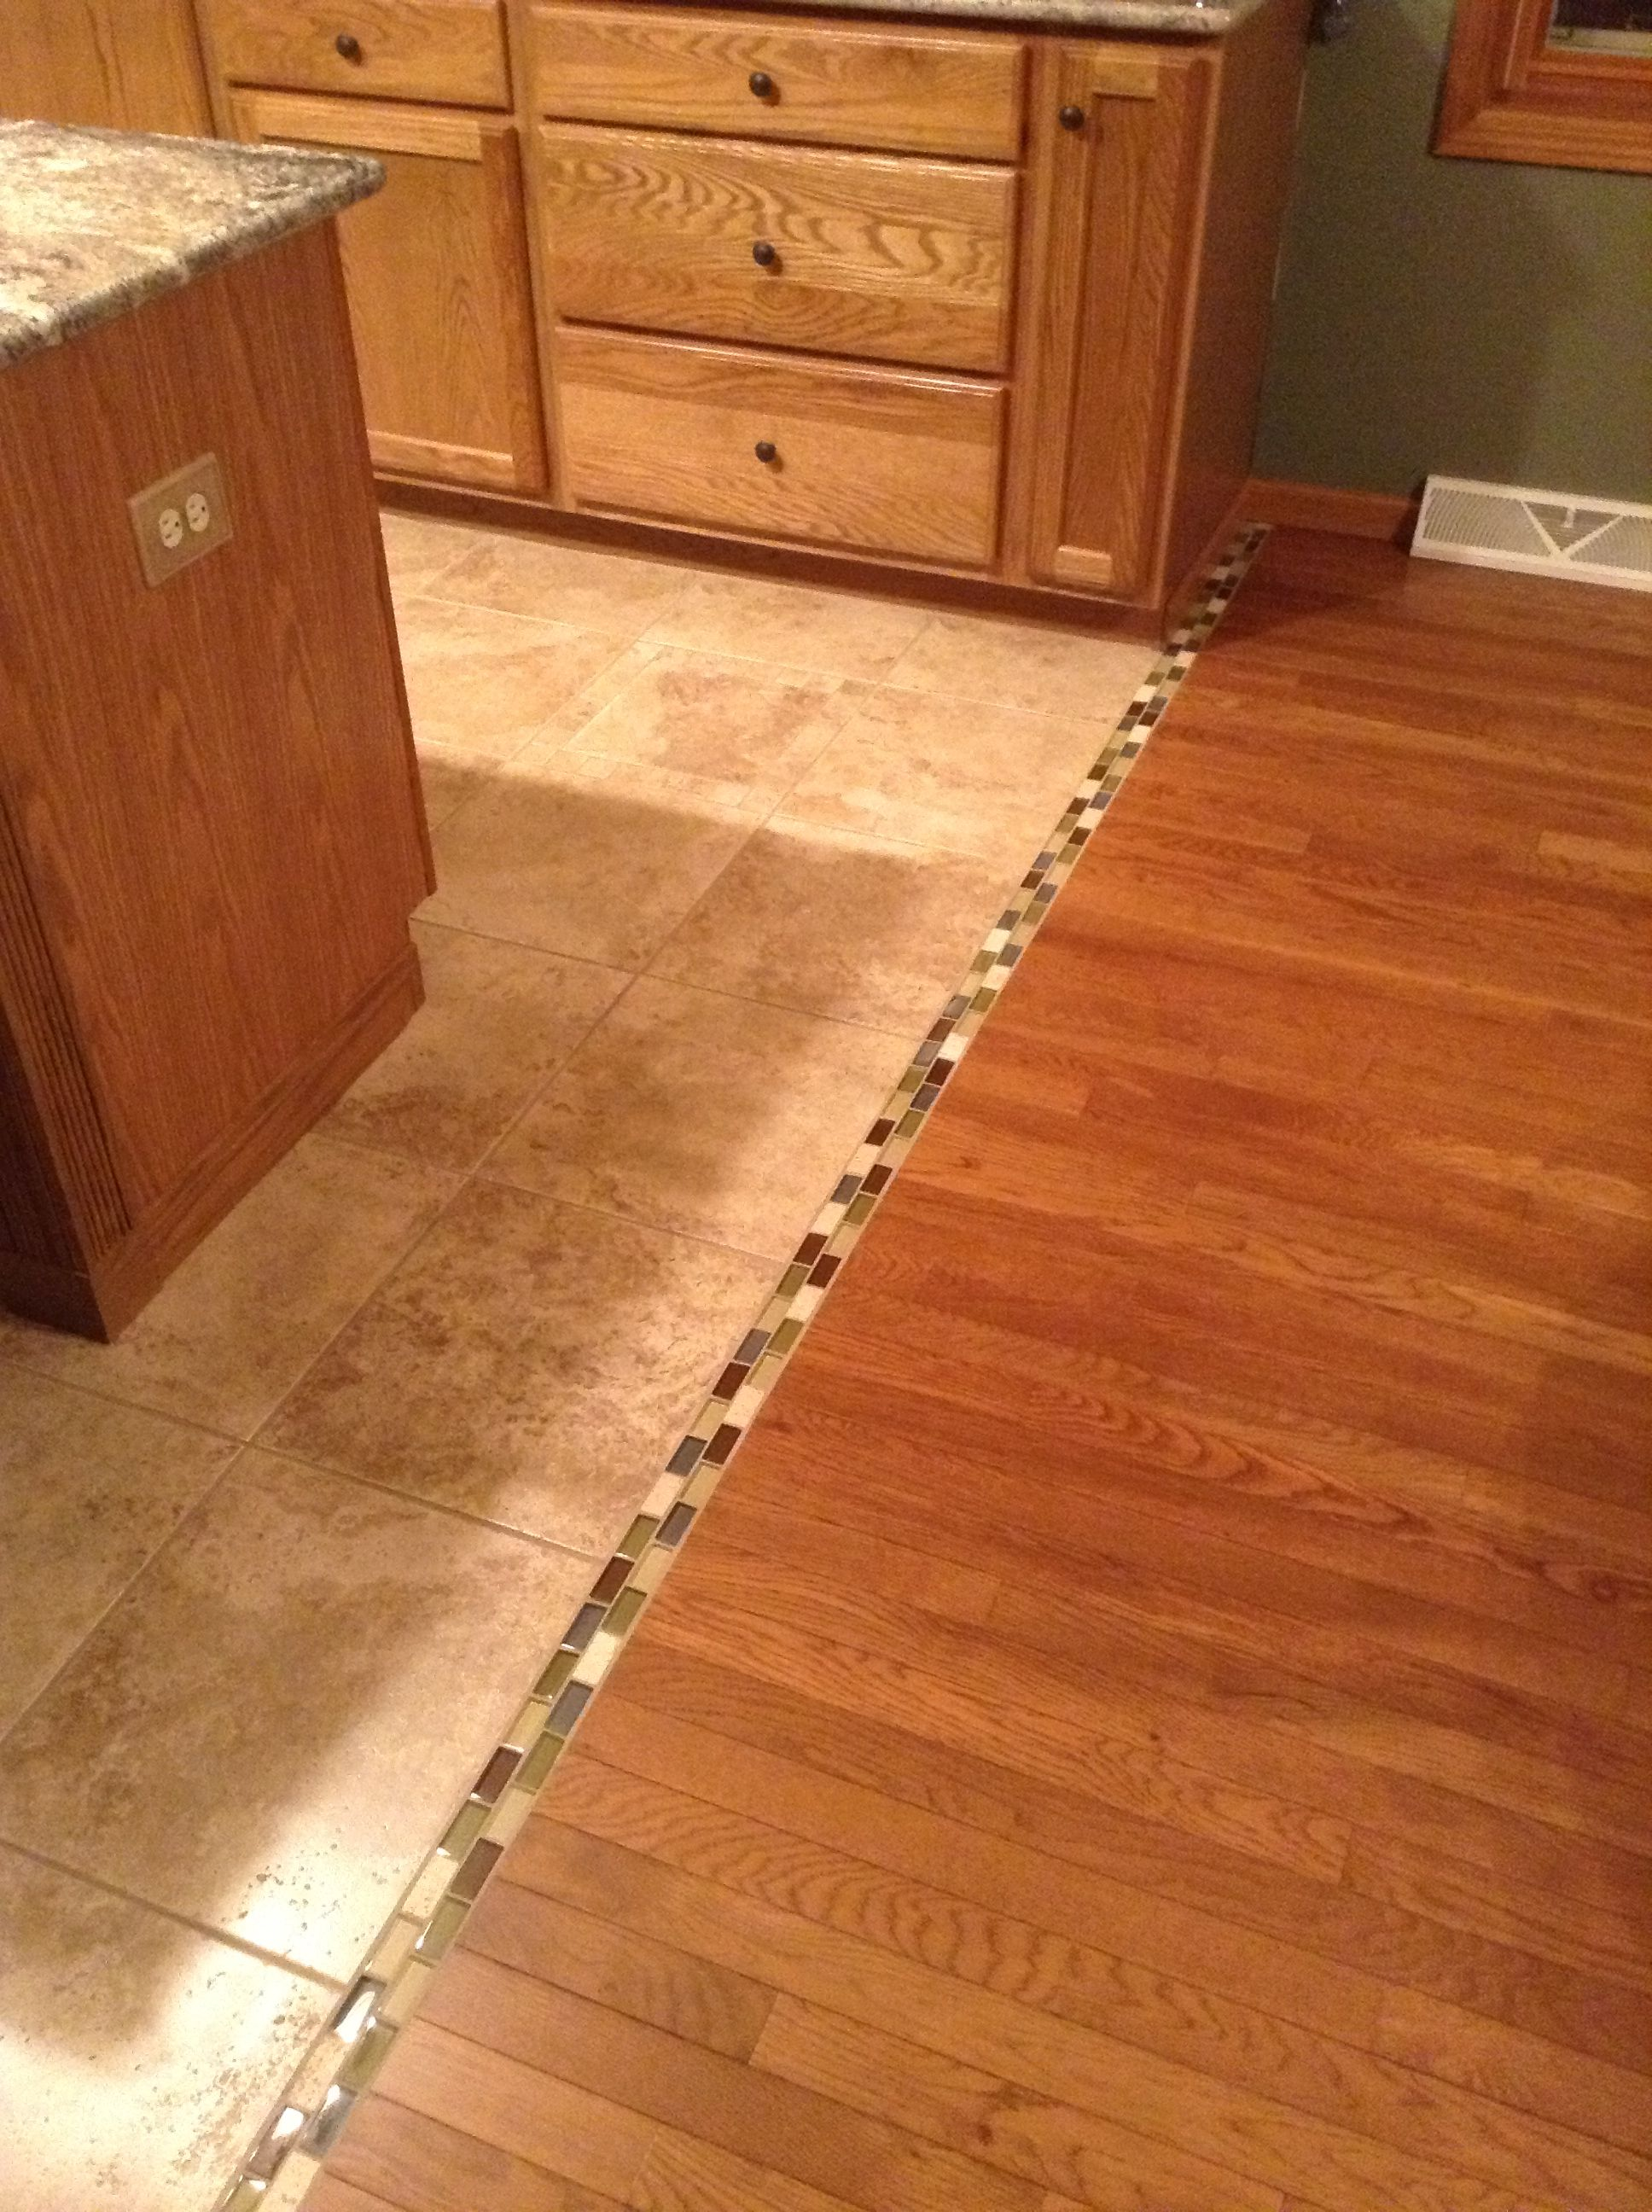 Wet Kitchen Floor Transition Between Hardwood And Tile Floor We Should Do This